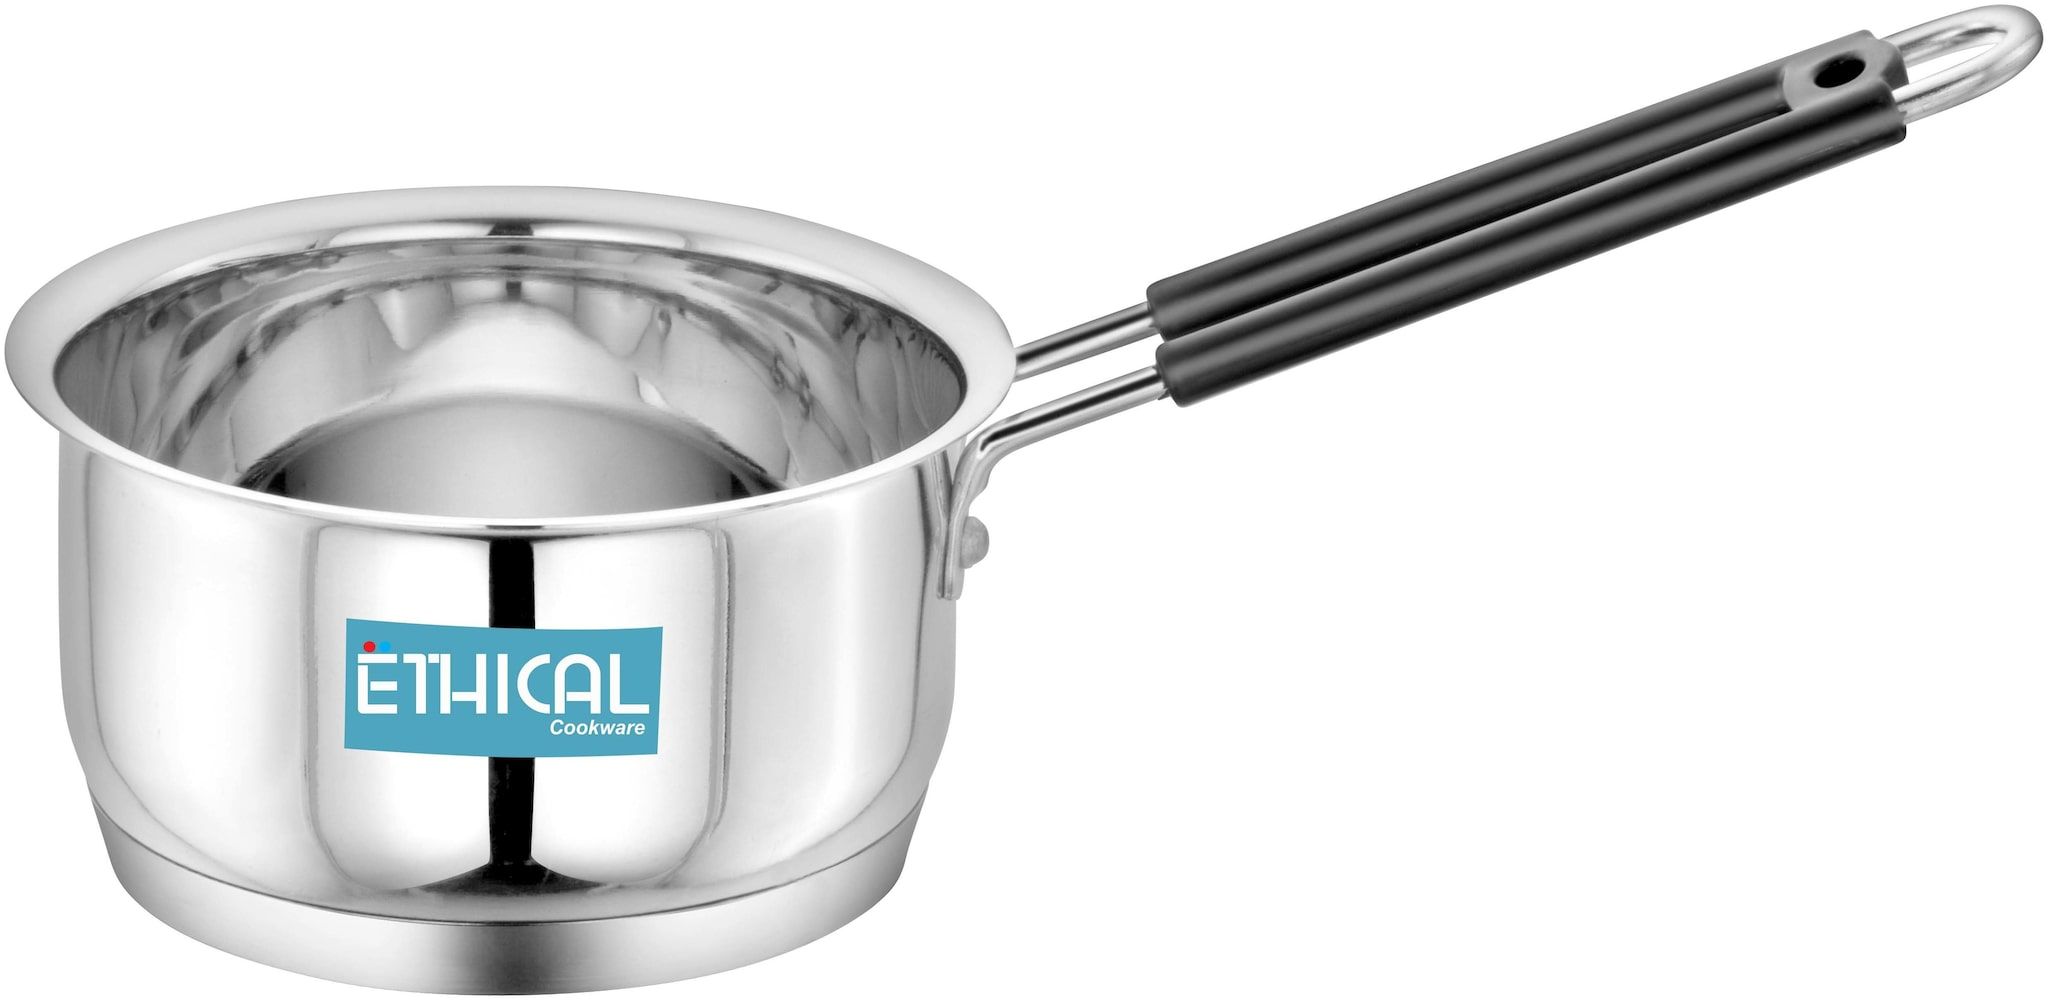 Ethical Fineart Stainless Steel Encapsulated Bottom Sauce Pan 1.30 L / 16 cm Diameter by Ethical